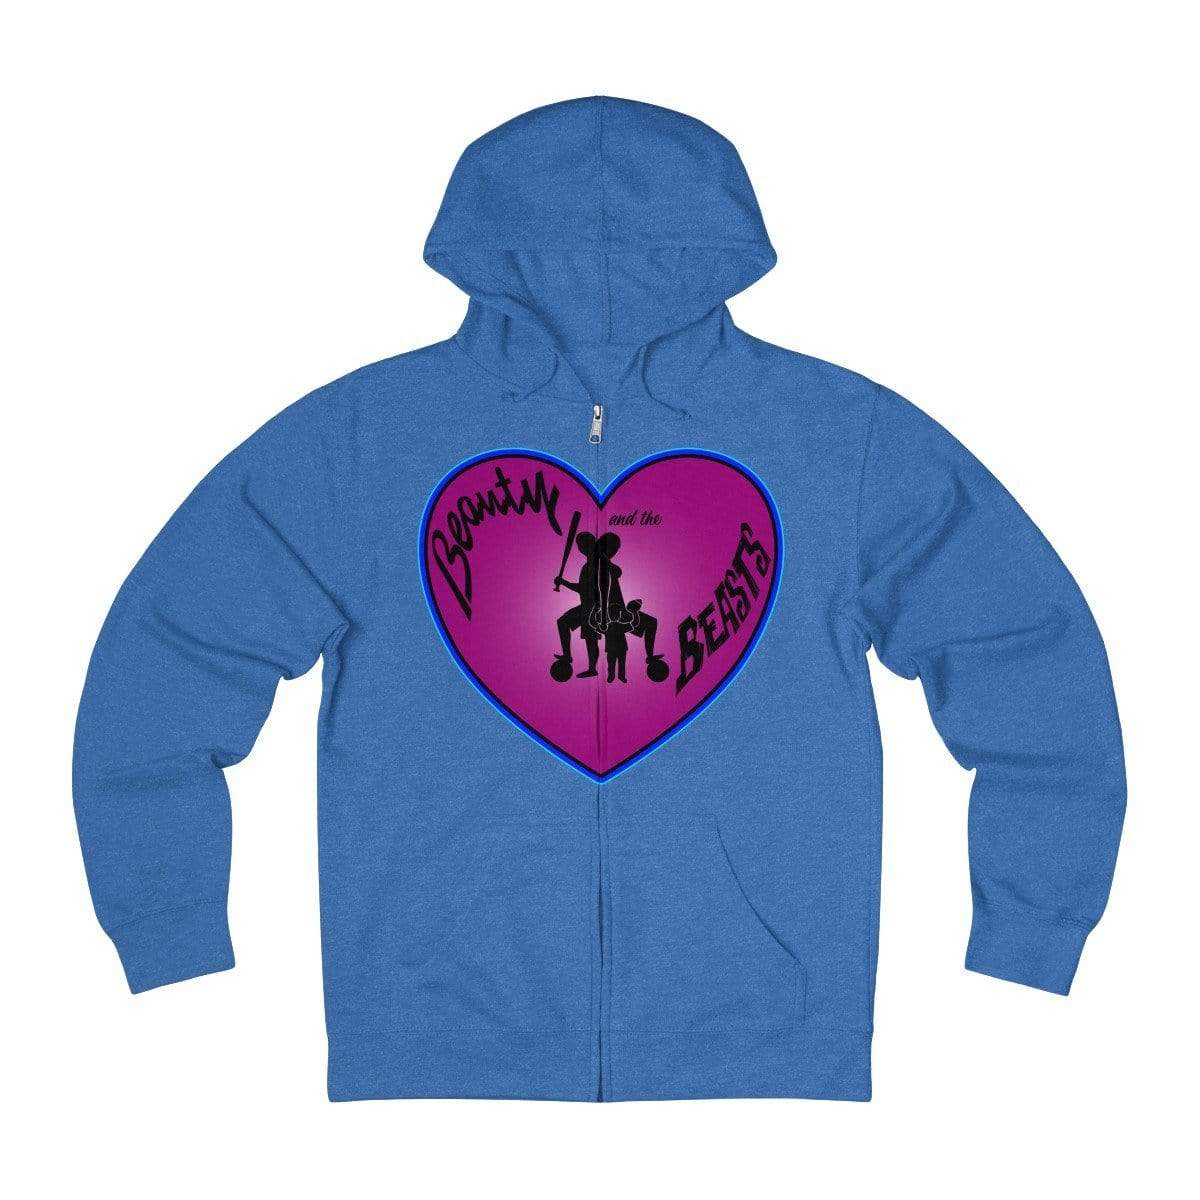 Plumskum Hoodie Royal Heather / XS Sports Mother of Twins + French Terry Zip Hoodie